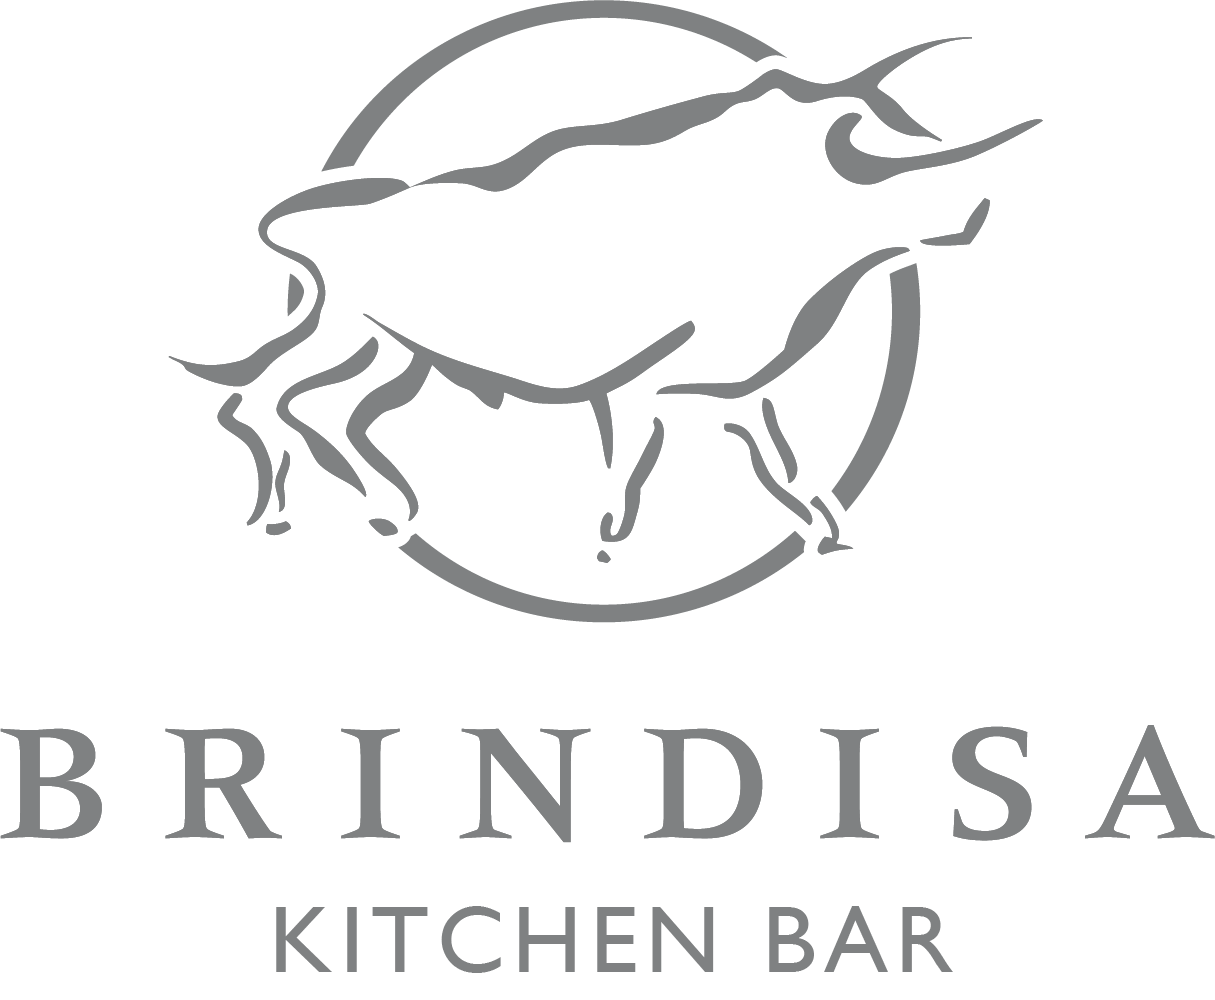 KITCHEN BAR Logo